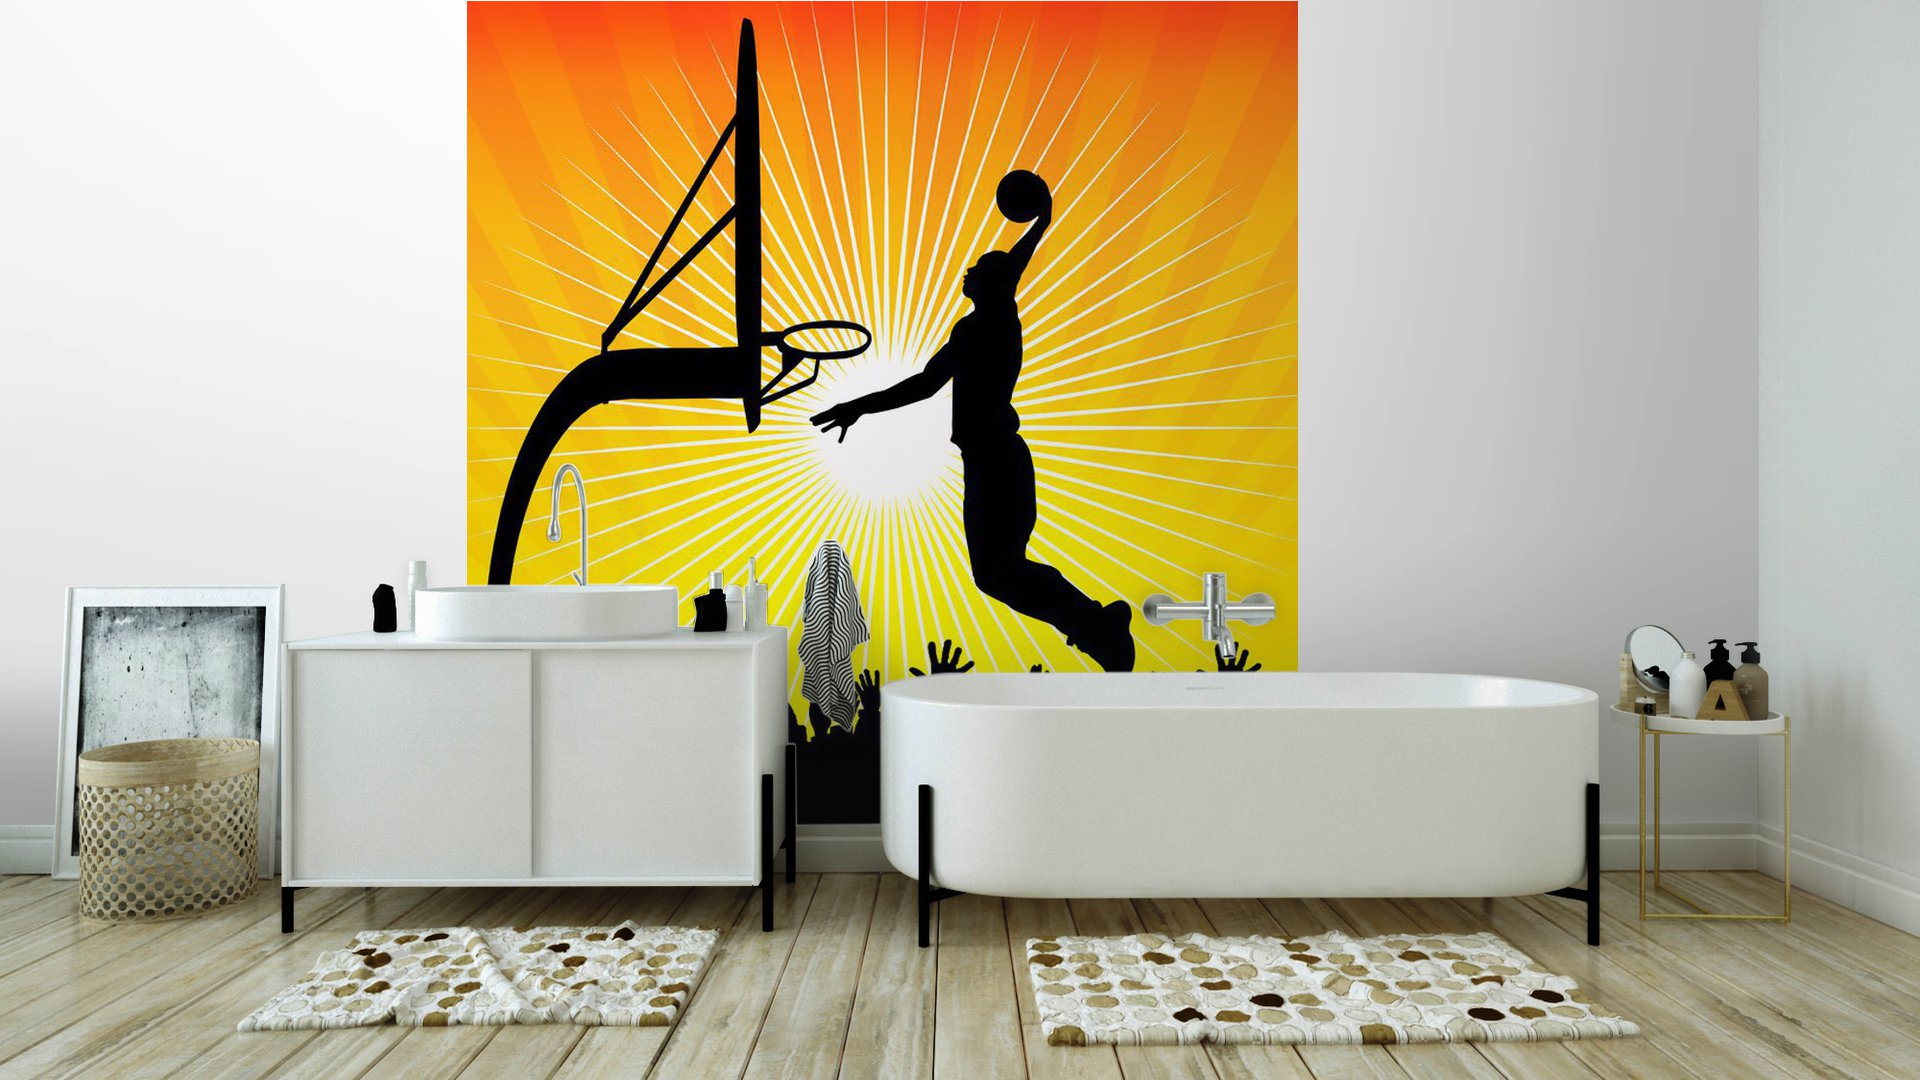 Basketball player and crowd vinyl wall mural pixers for Audience wall mural